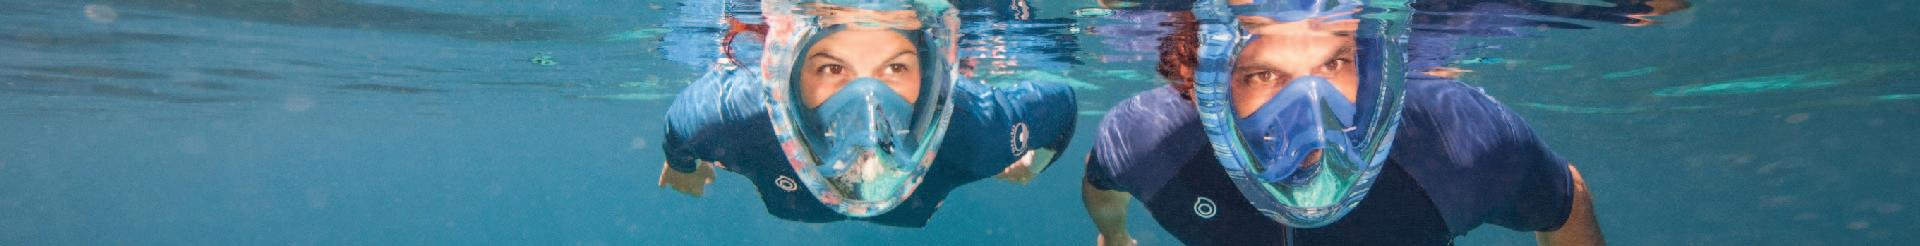 Snorkeling and Diving Masks